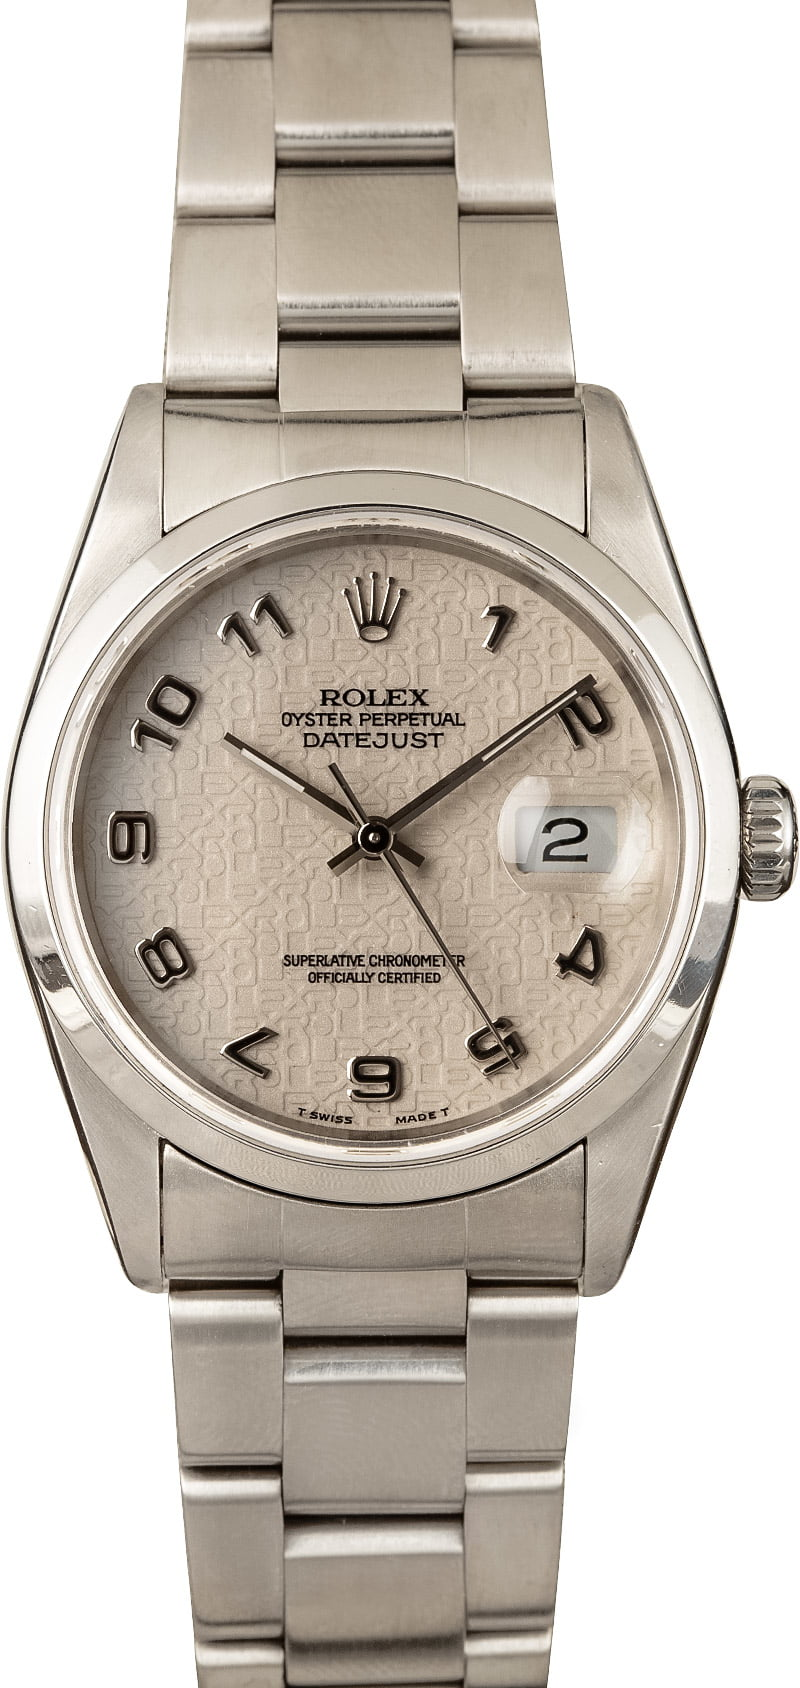 Is Rolex Datejust 36 The Ultimate Luxury Dress Watch? Stainless Steel 16200